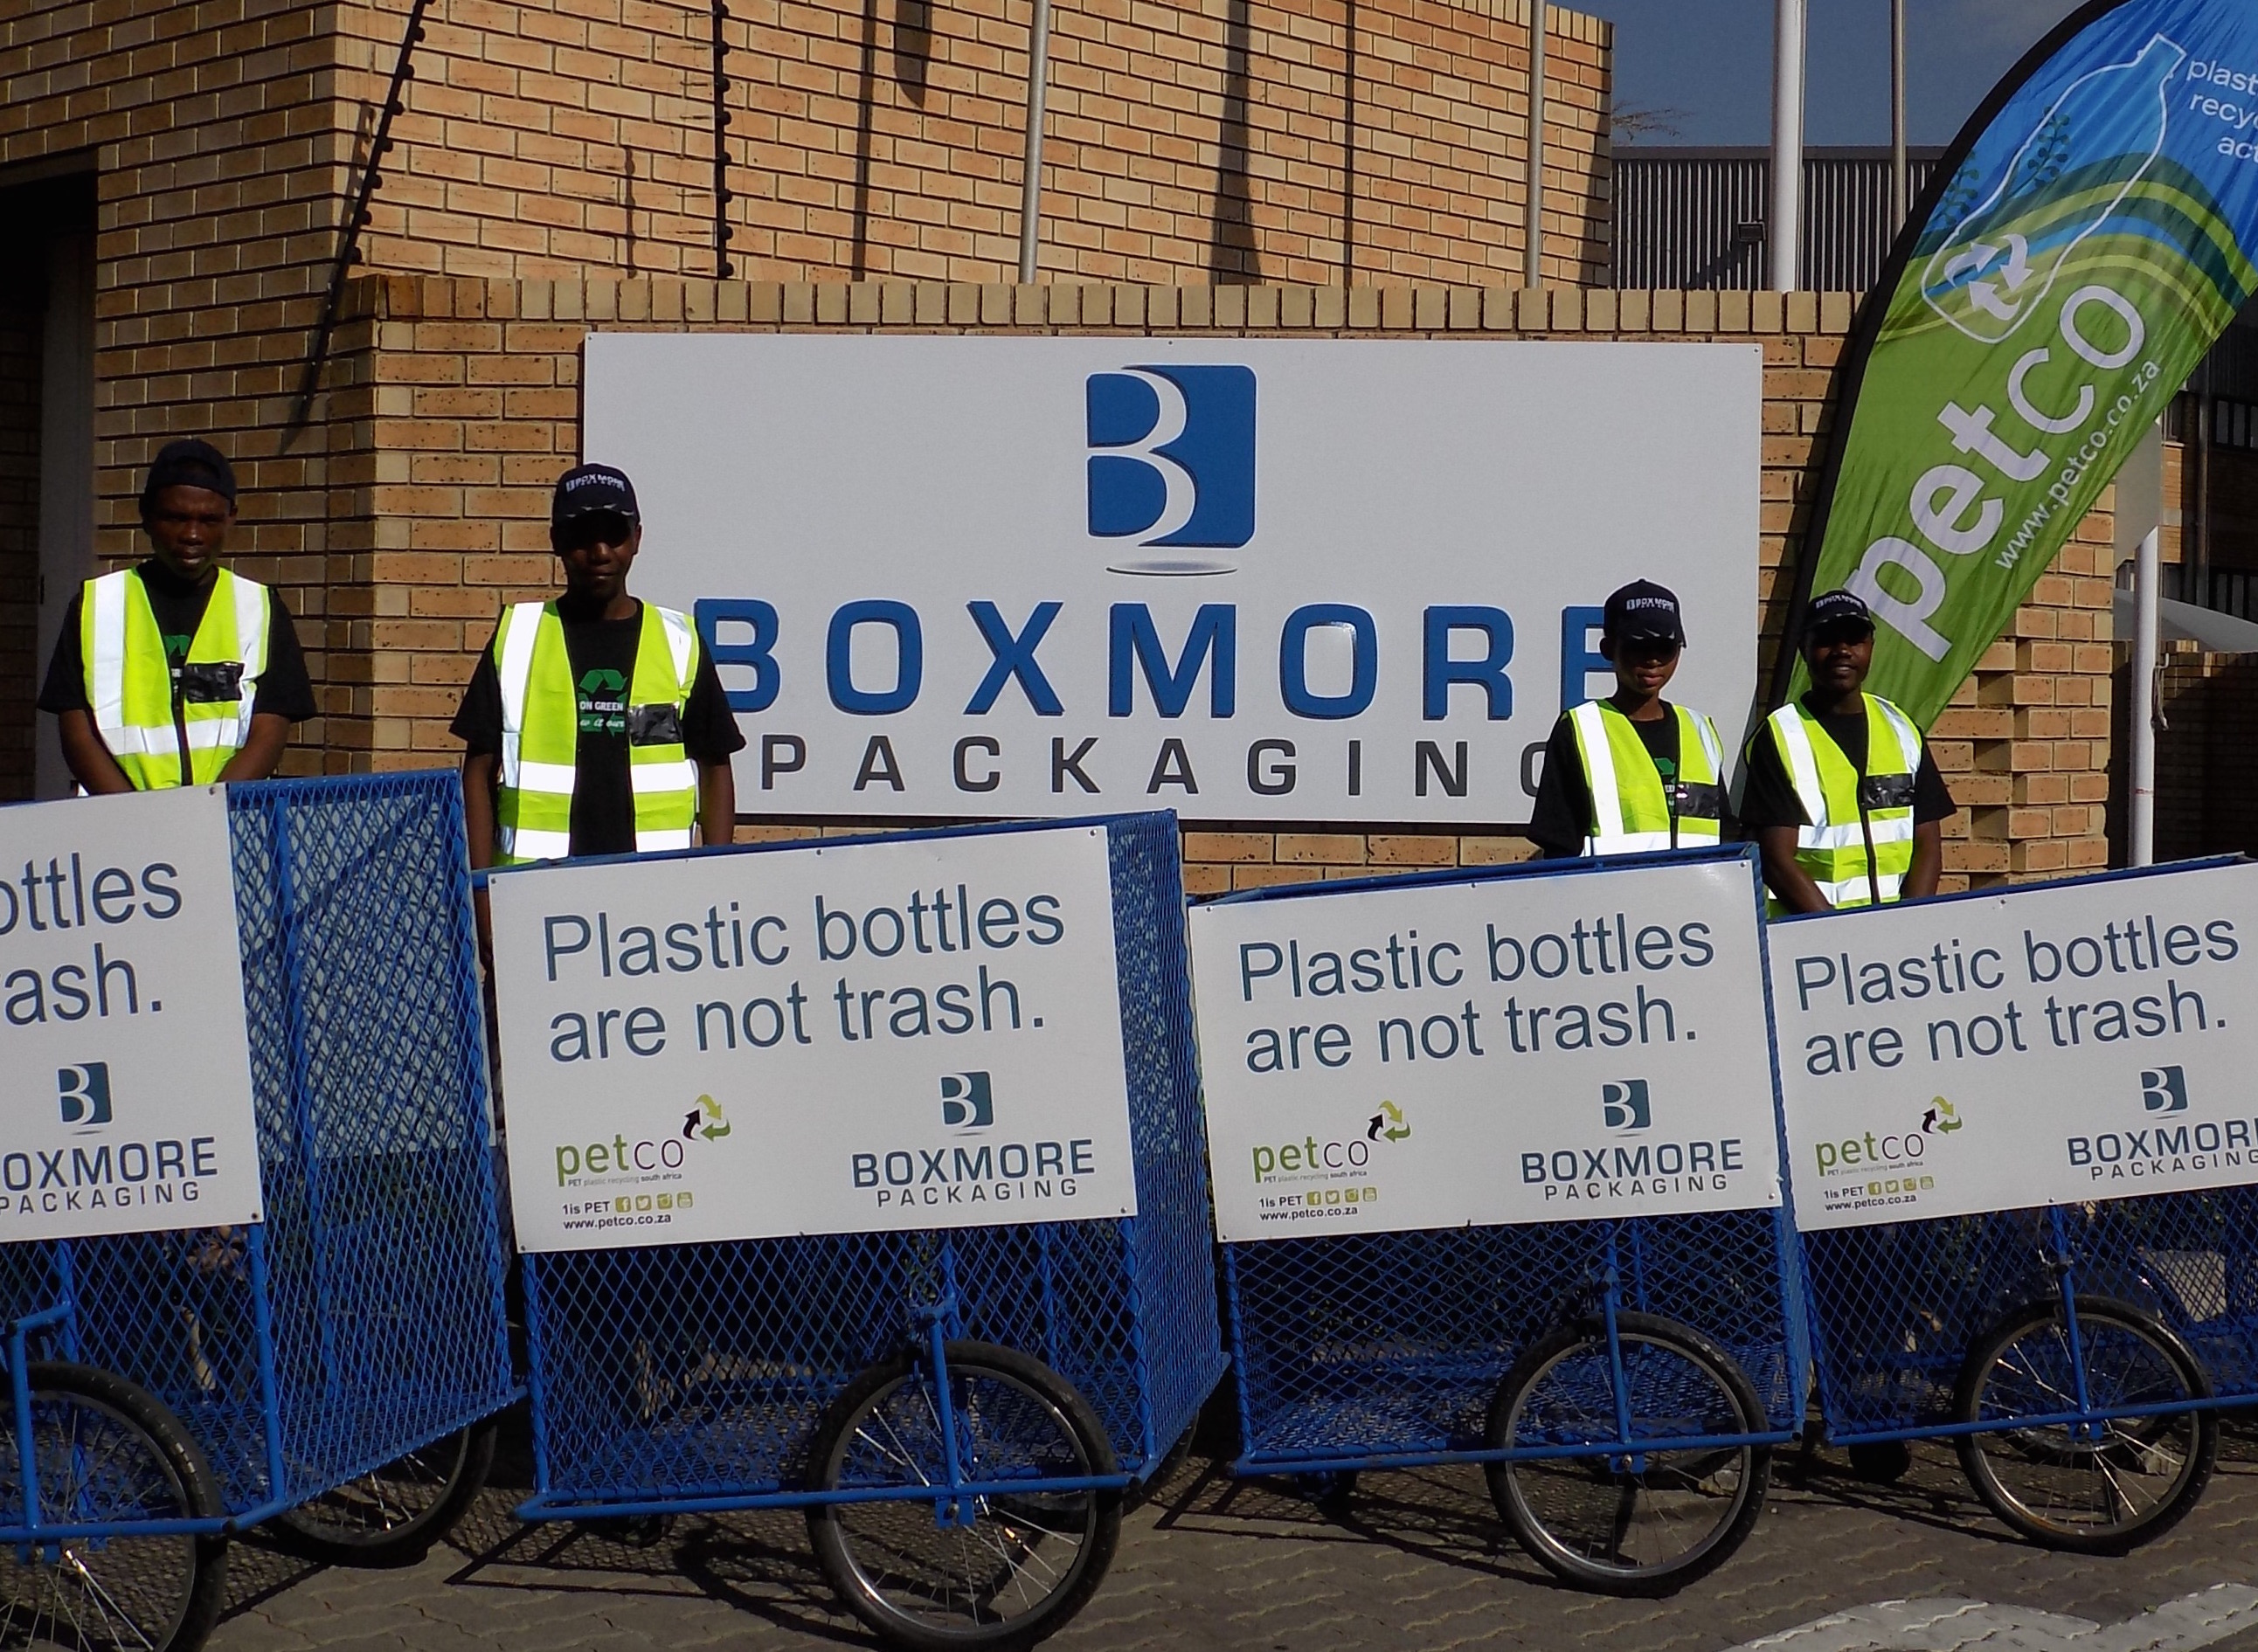 BOXMORE AND PETCO COLLABORATE TO CREATE JOBS AND DRIVE RECYCLING